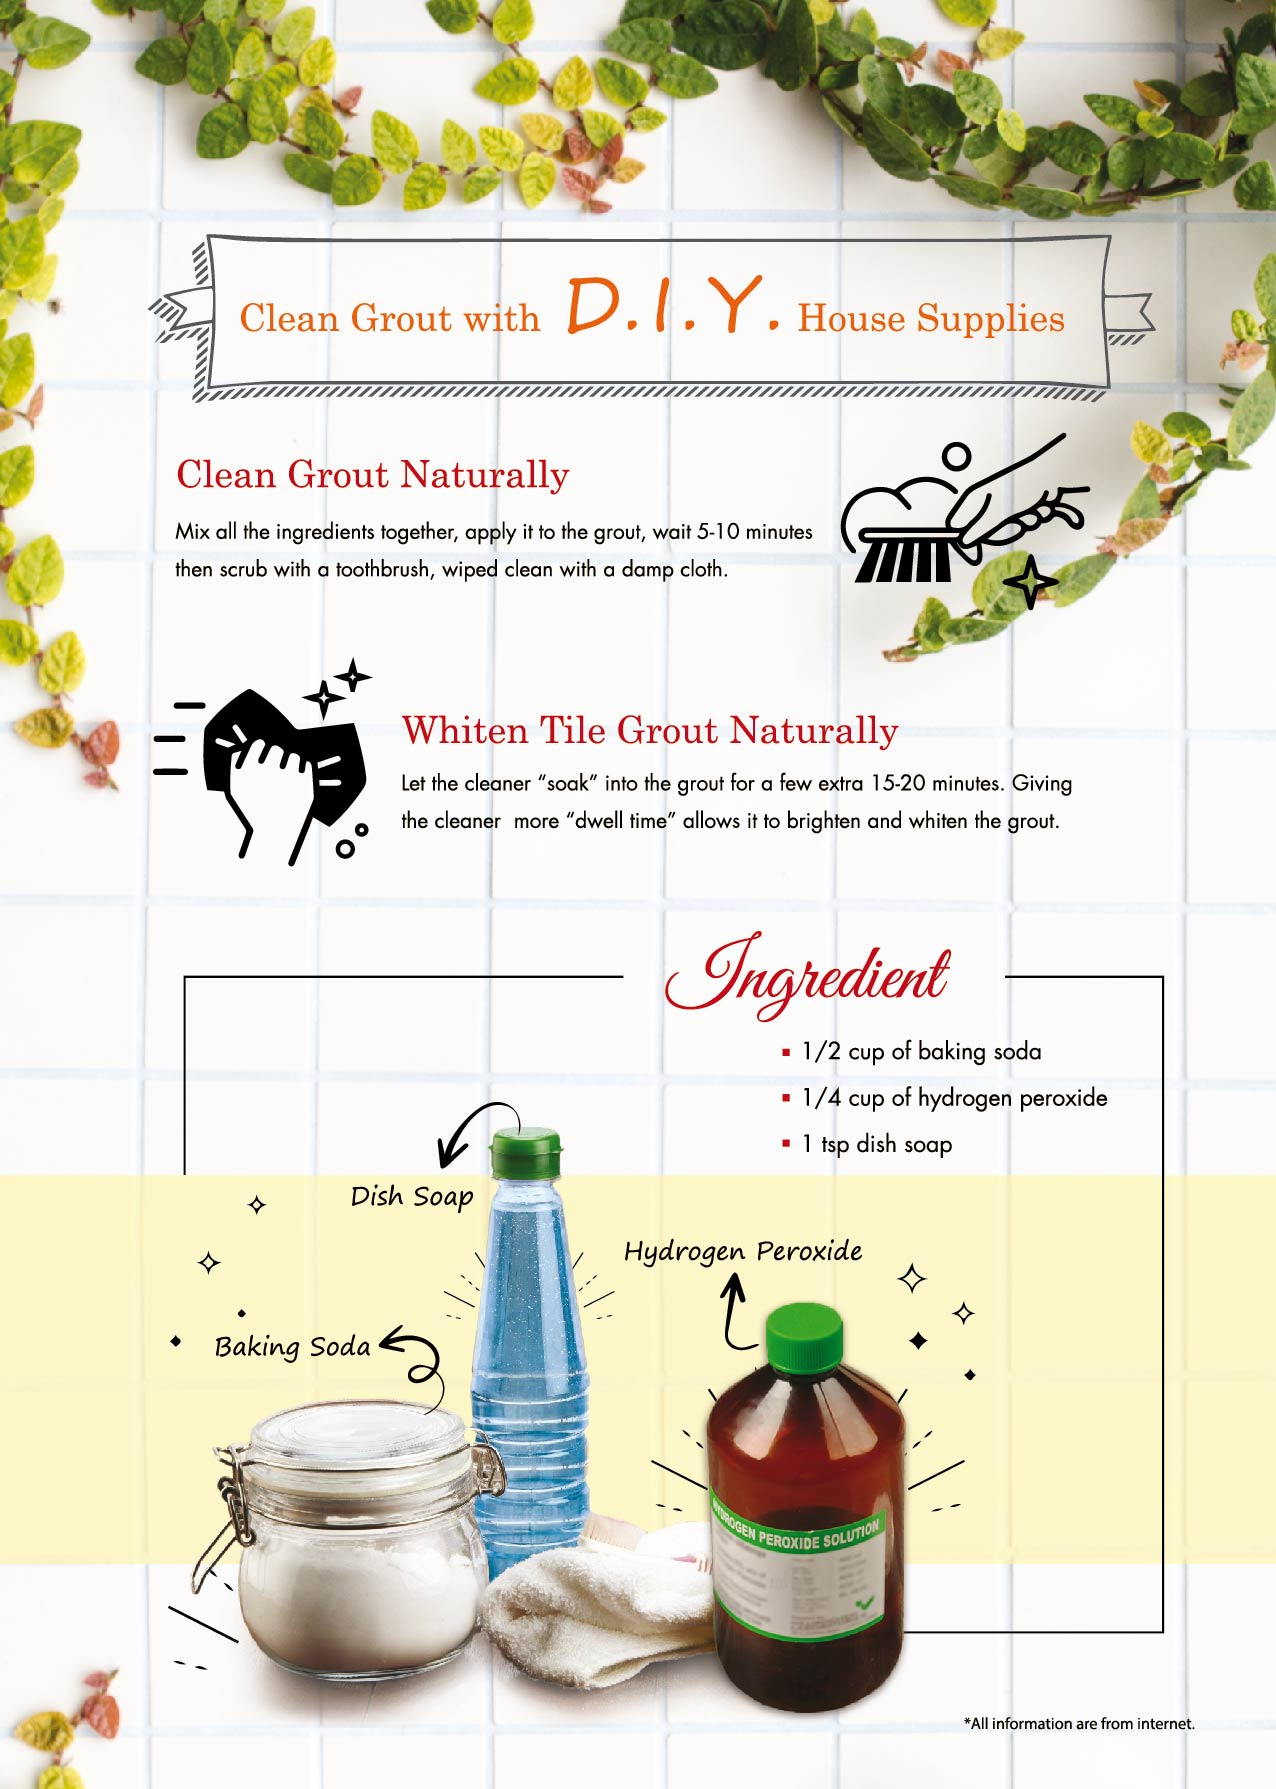 Clean Gout with DIY house supplies